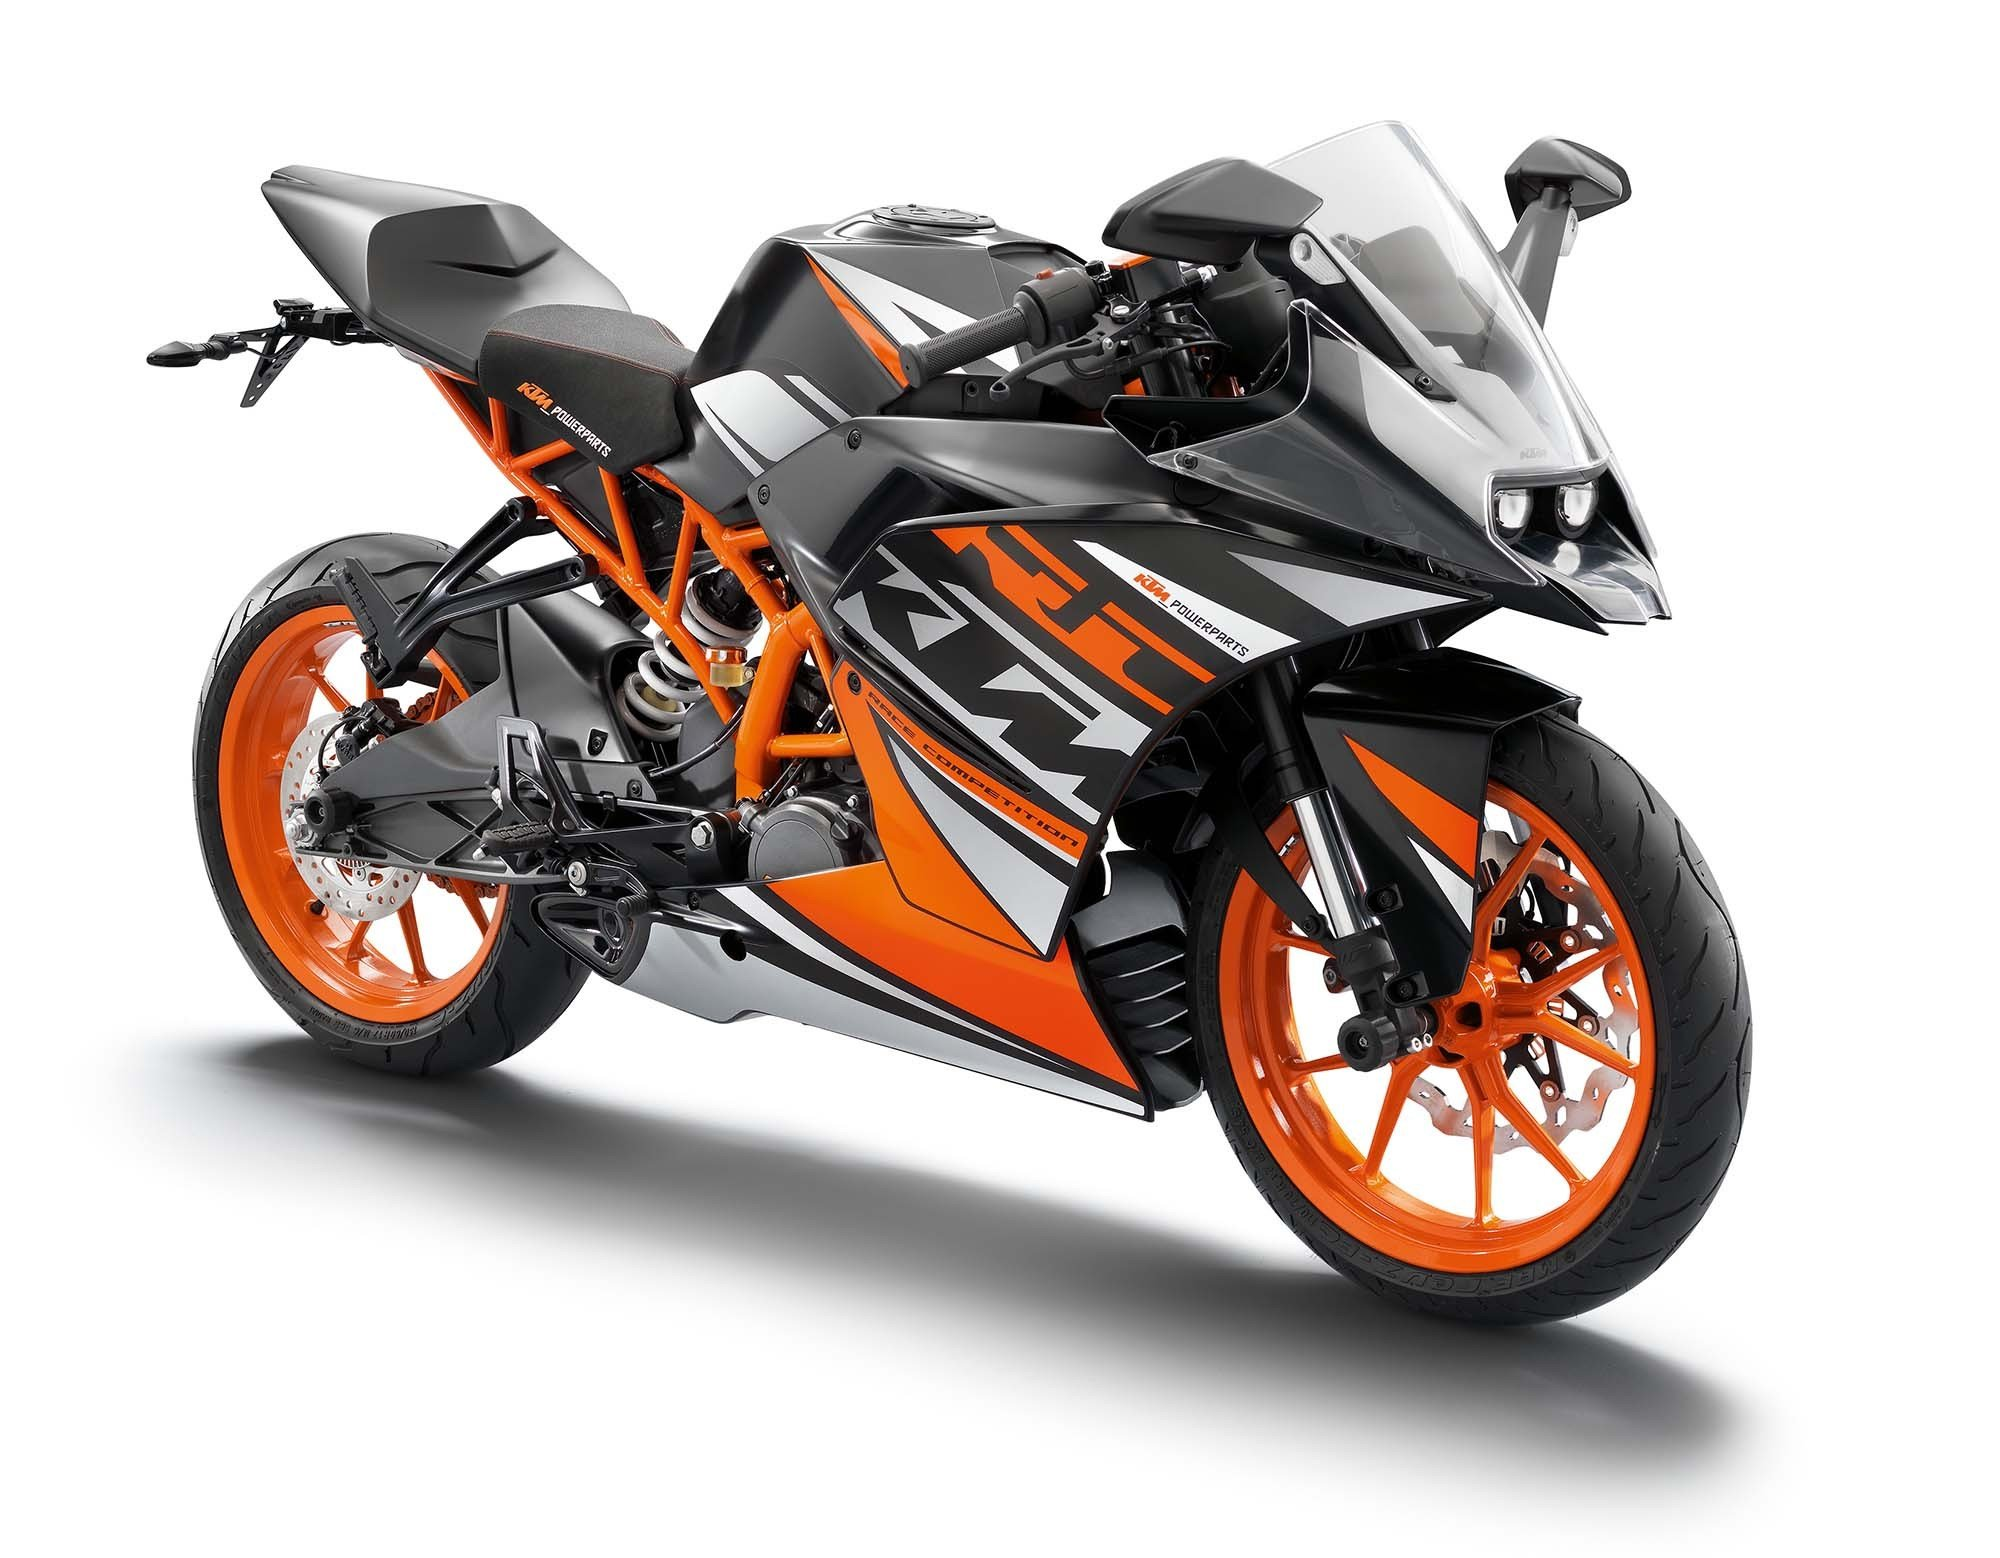 New 2014 Ktm Rc200 Ktm Rc125 The More The Merrier On This Month